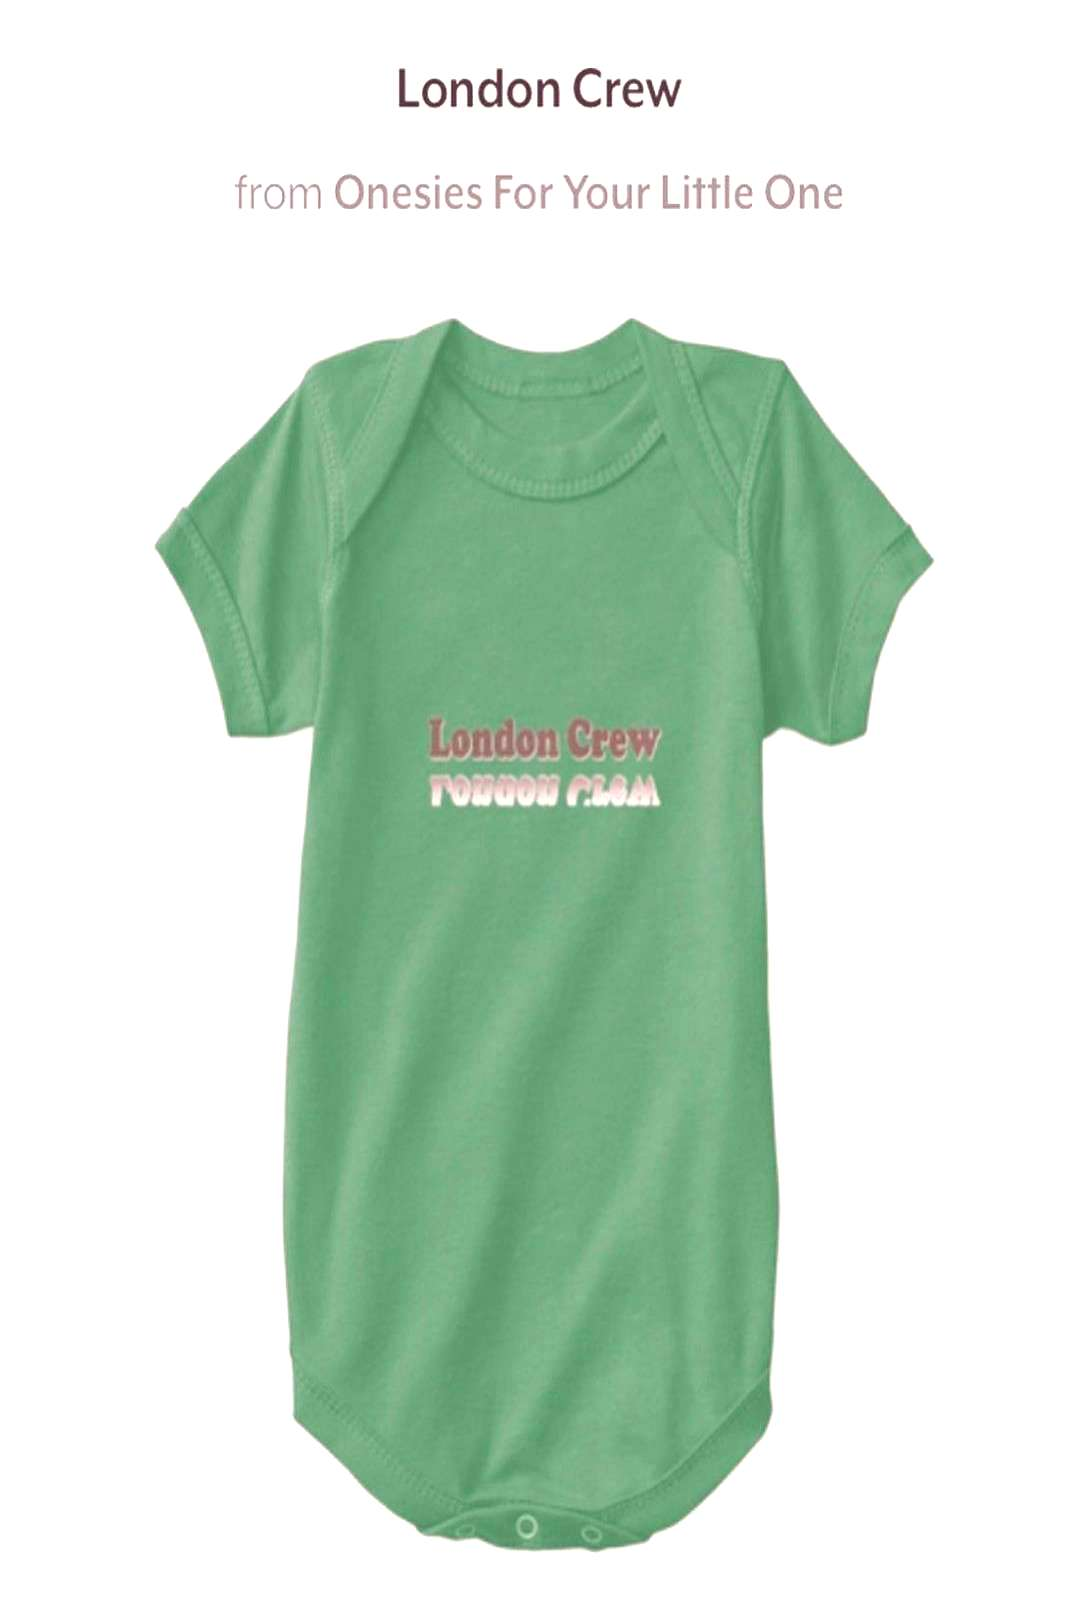 text that says London Crew from Onesies For For Your Little One LYou can find Rompers and more on o